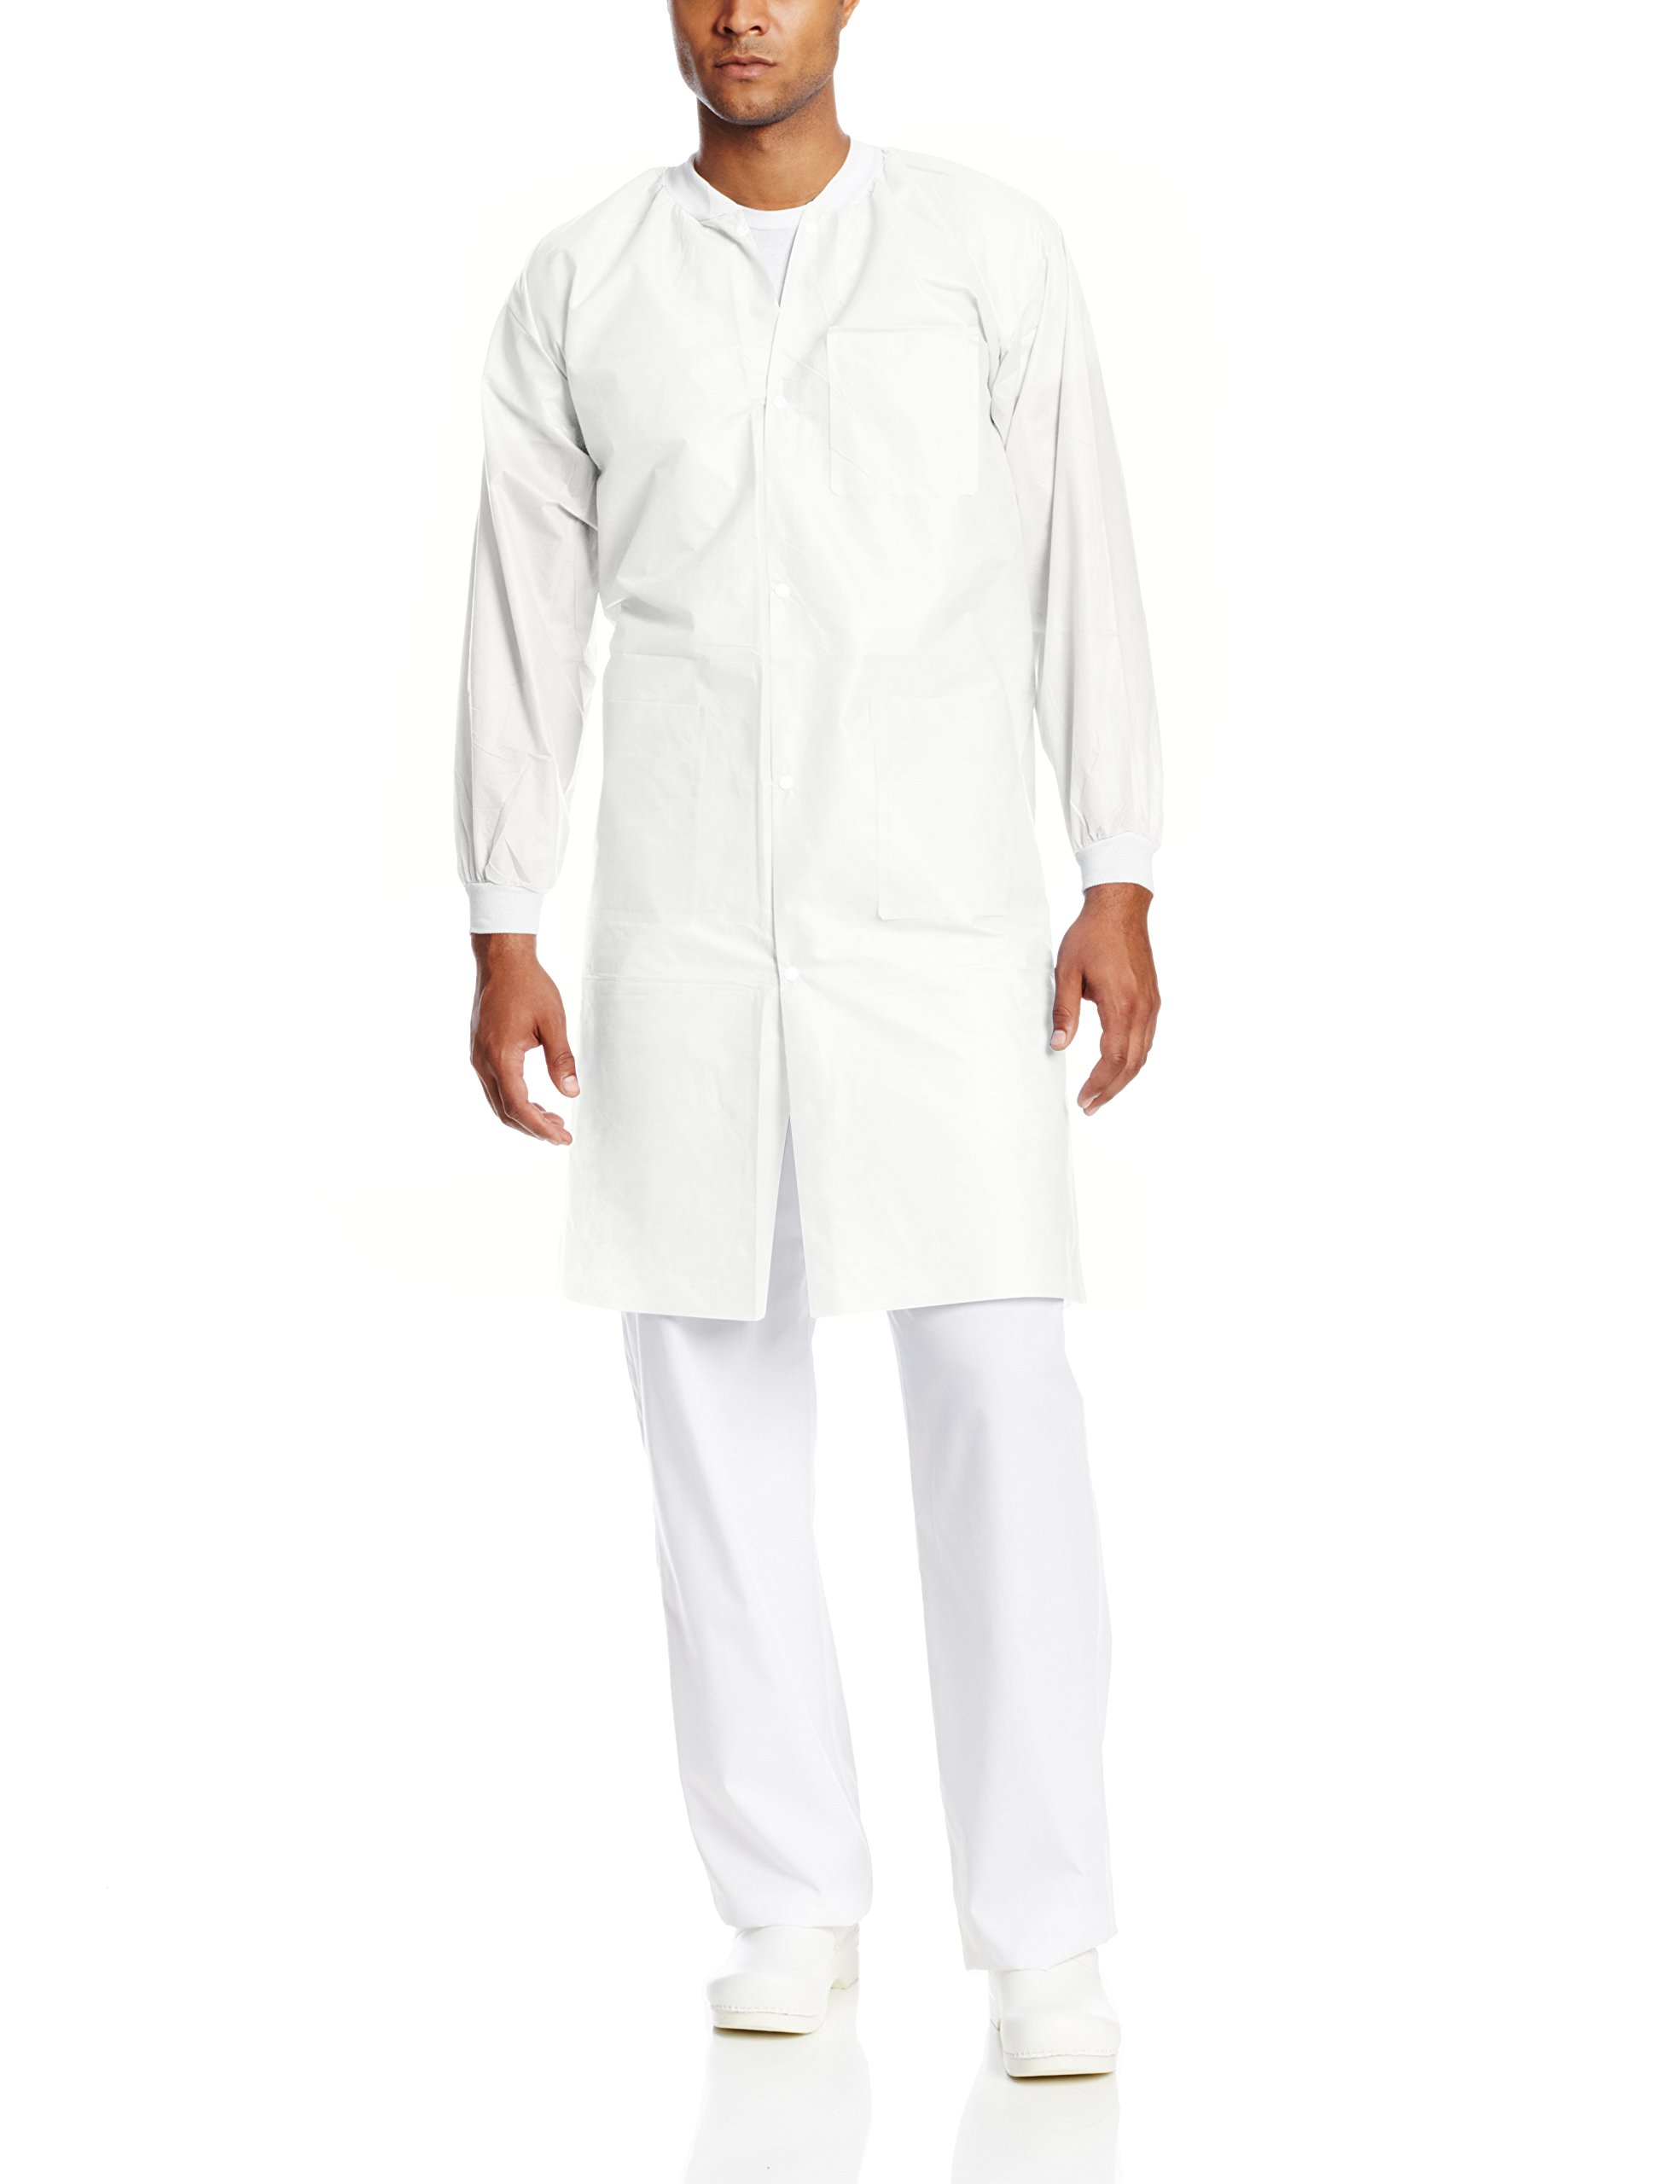 ValuMax 3660WHXL-K Knit Collar, Extra-Safe, Wrinkle-Free, Noble Looking Disposable SMS Knee Length Lab Coat, White, XL, Pack of 10